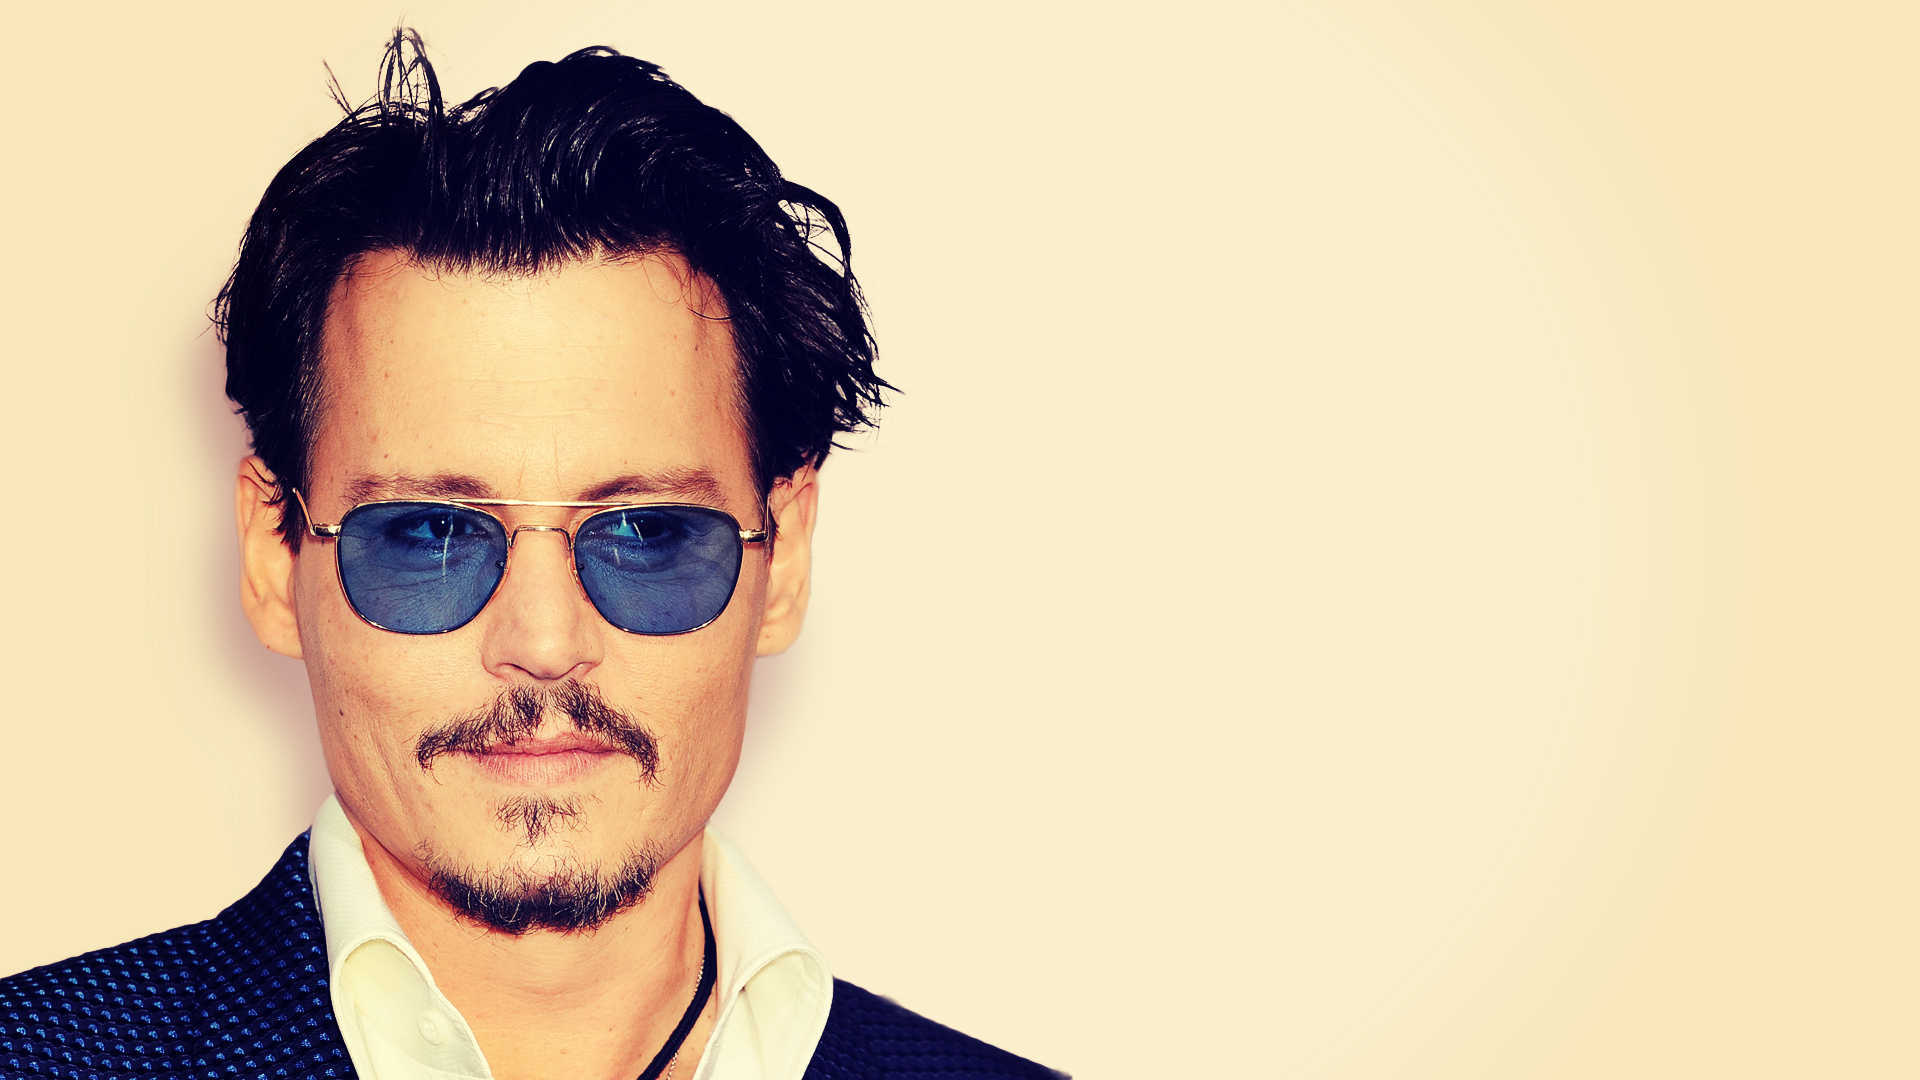 Johnny Depp Wallpapers High Quality Download Free